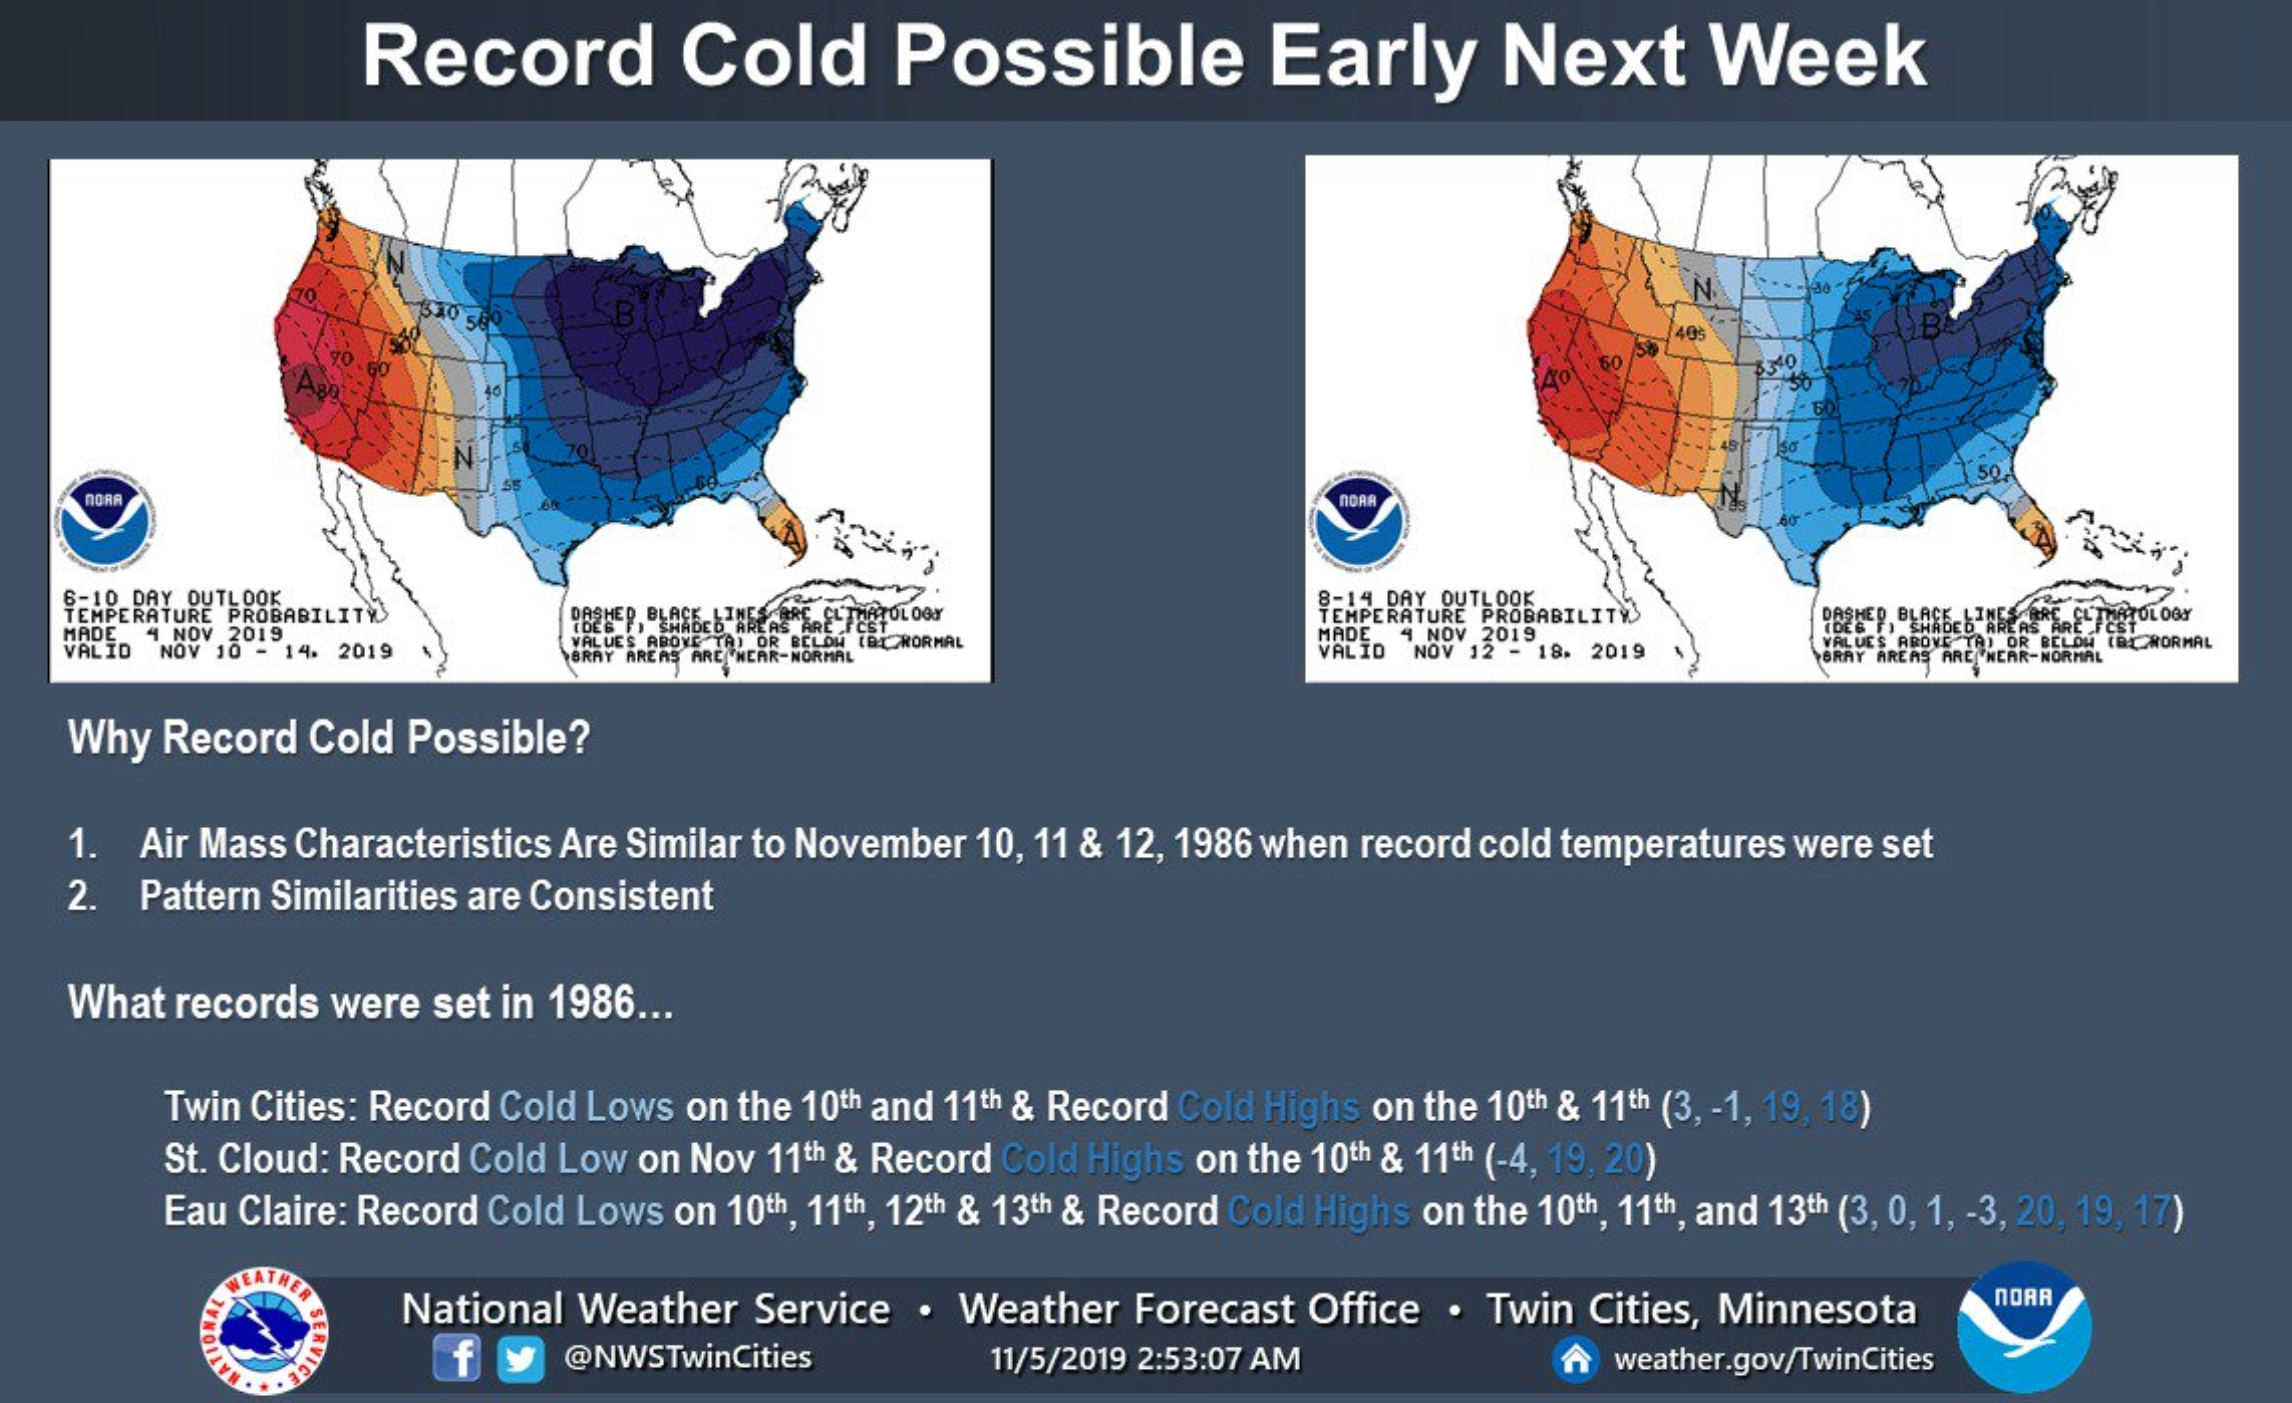 Accumulating Snow Far Southern Minnesota – Record Cold Next Week?